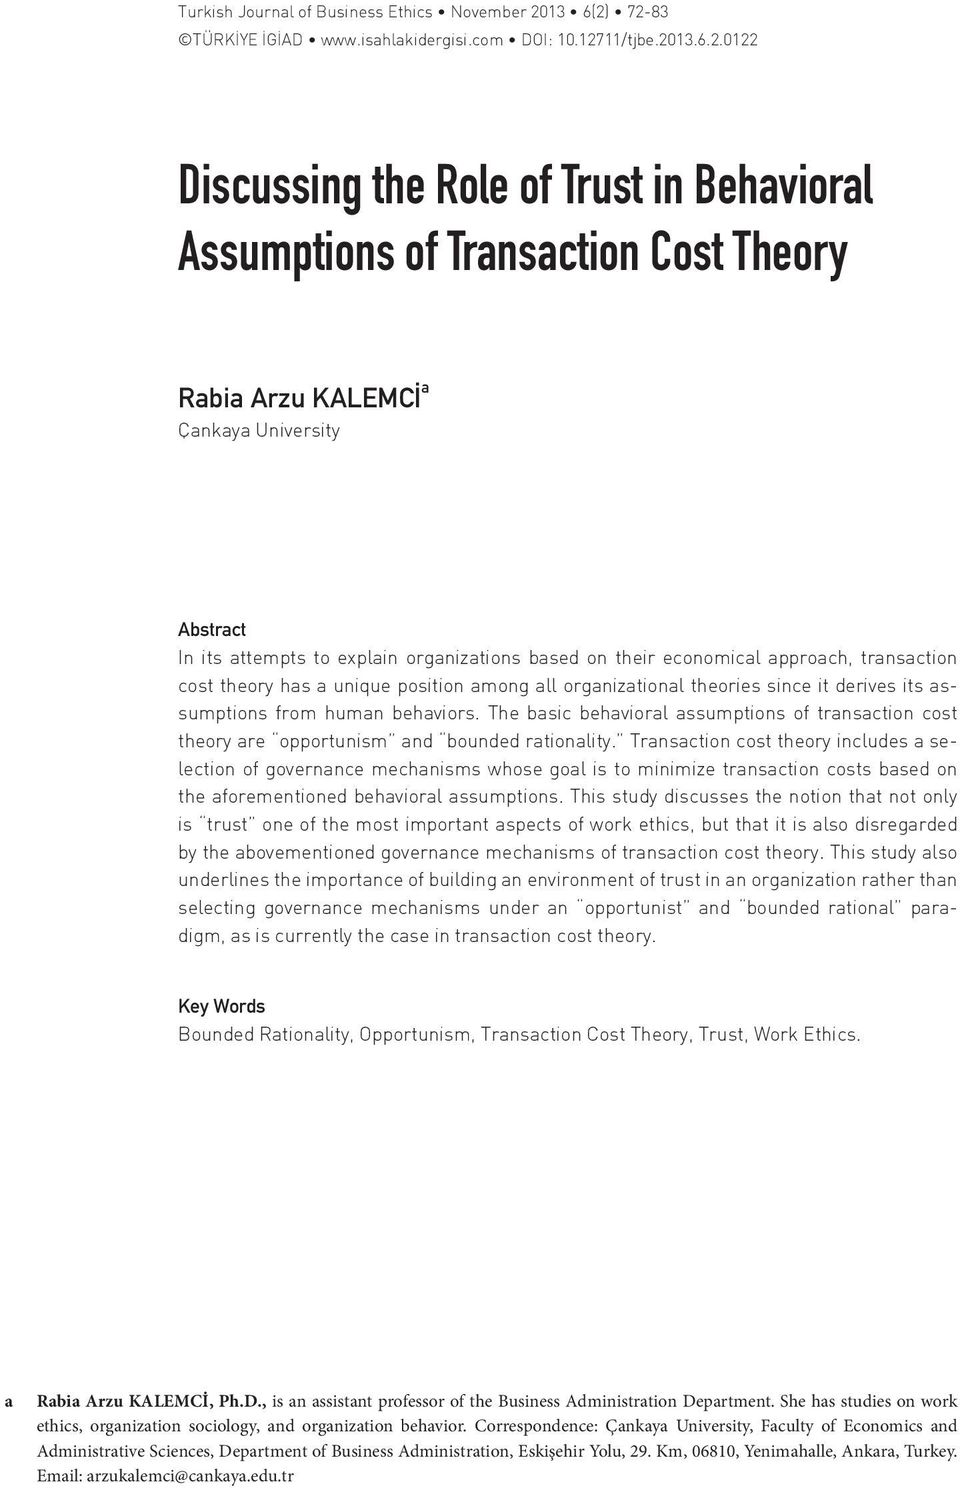 72-83 TÜRKİYE İGİAD www.isahlakidergisi.com DOI: 10.12711/tjbe.2013.6.2.0122 Discussing the Role of Trust in Behavioral Assumptions of Transaction Cost Theory Rabia Arzu KALEMCİ a Çankaya University